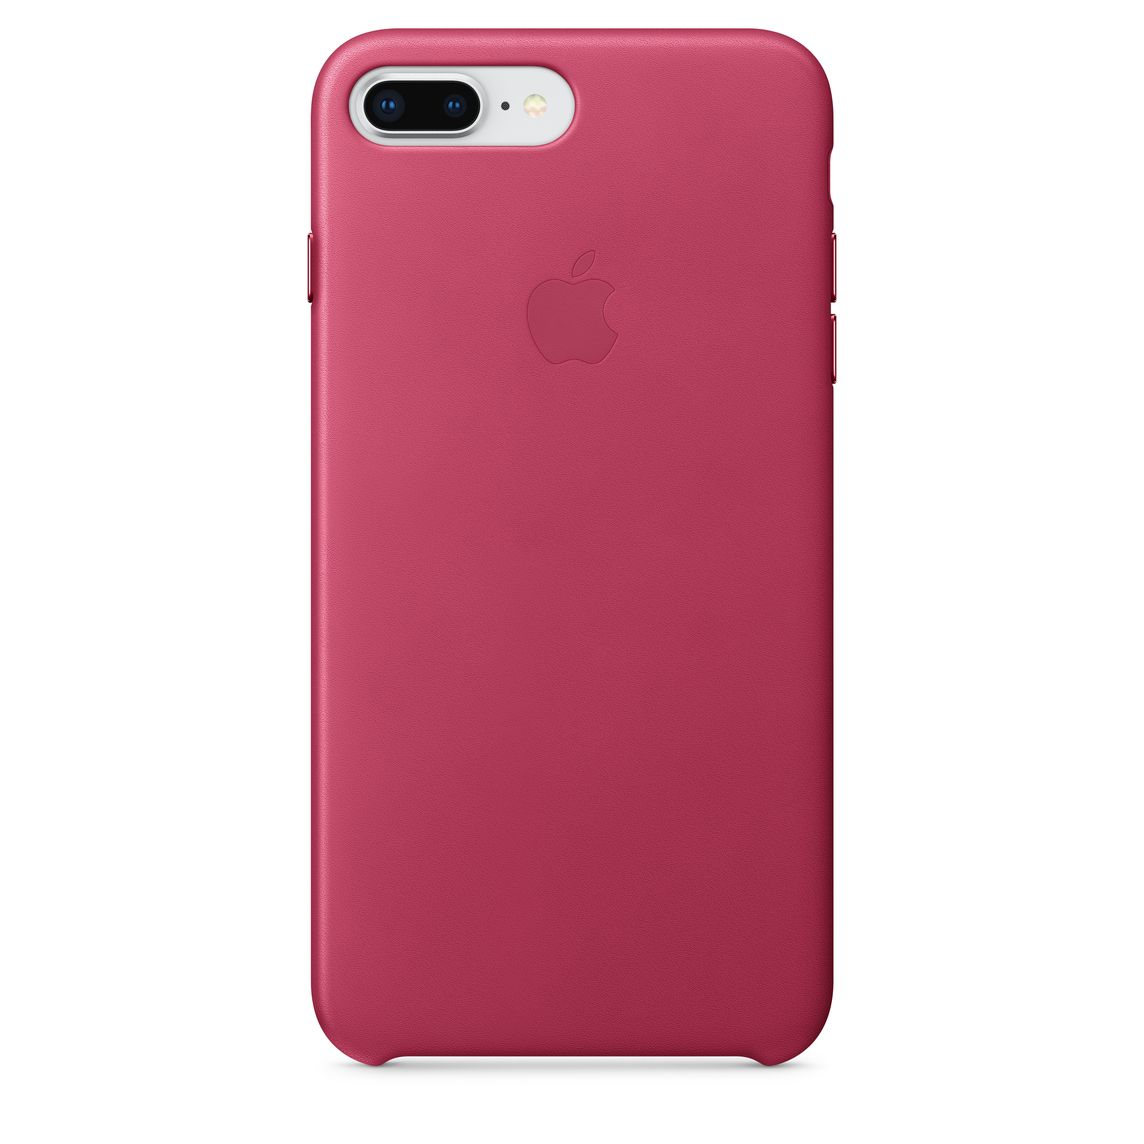 brand new 45ebd 50bbf iPhone 8 Plus / 7 Plus Leather Case - Pink Fuchsia